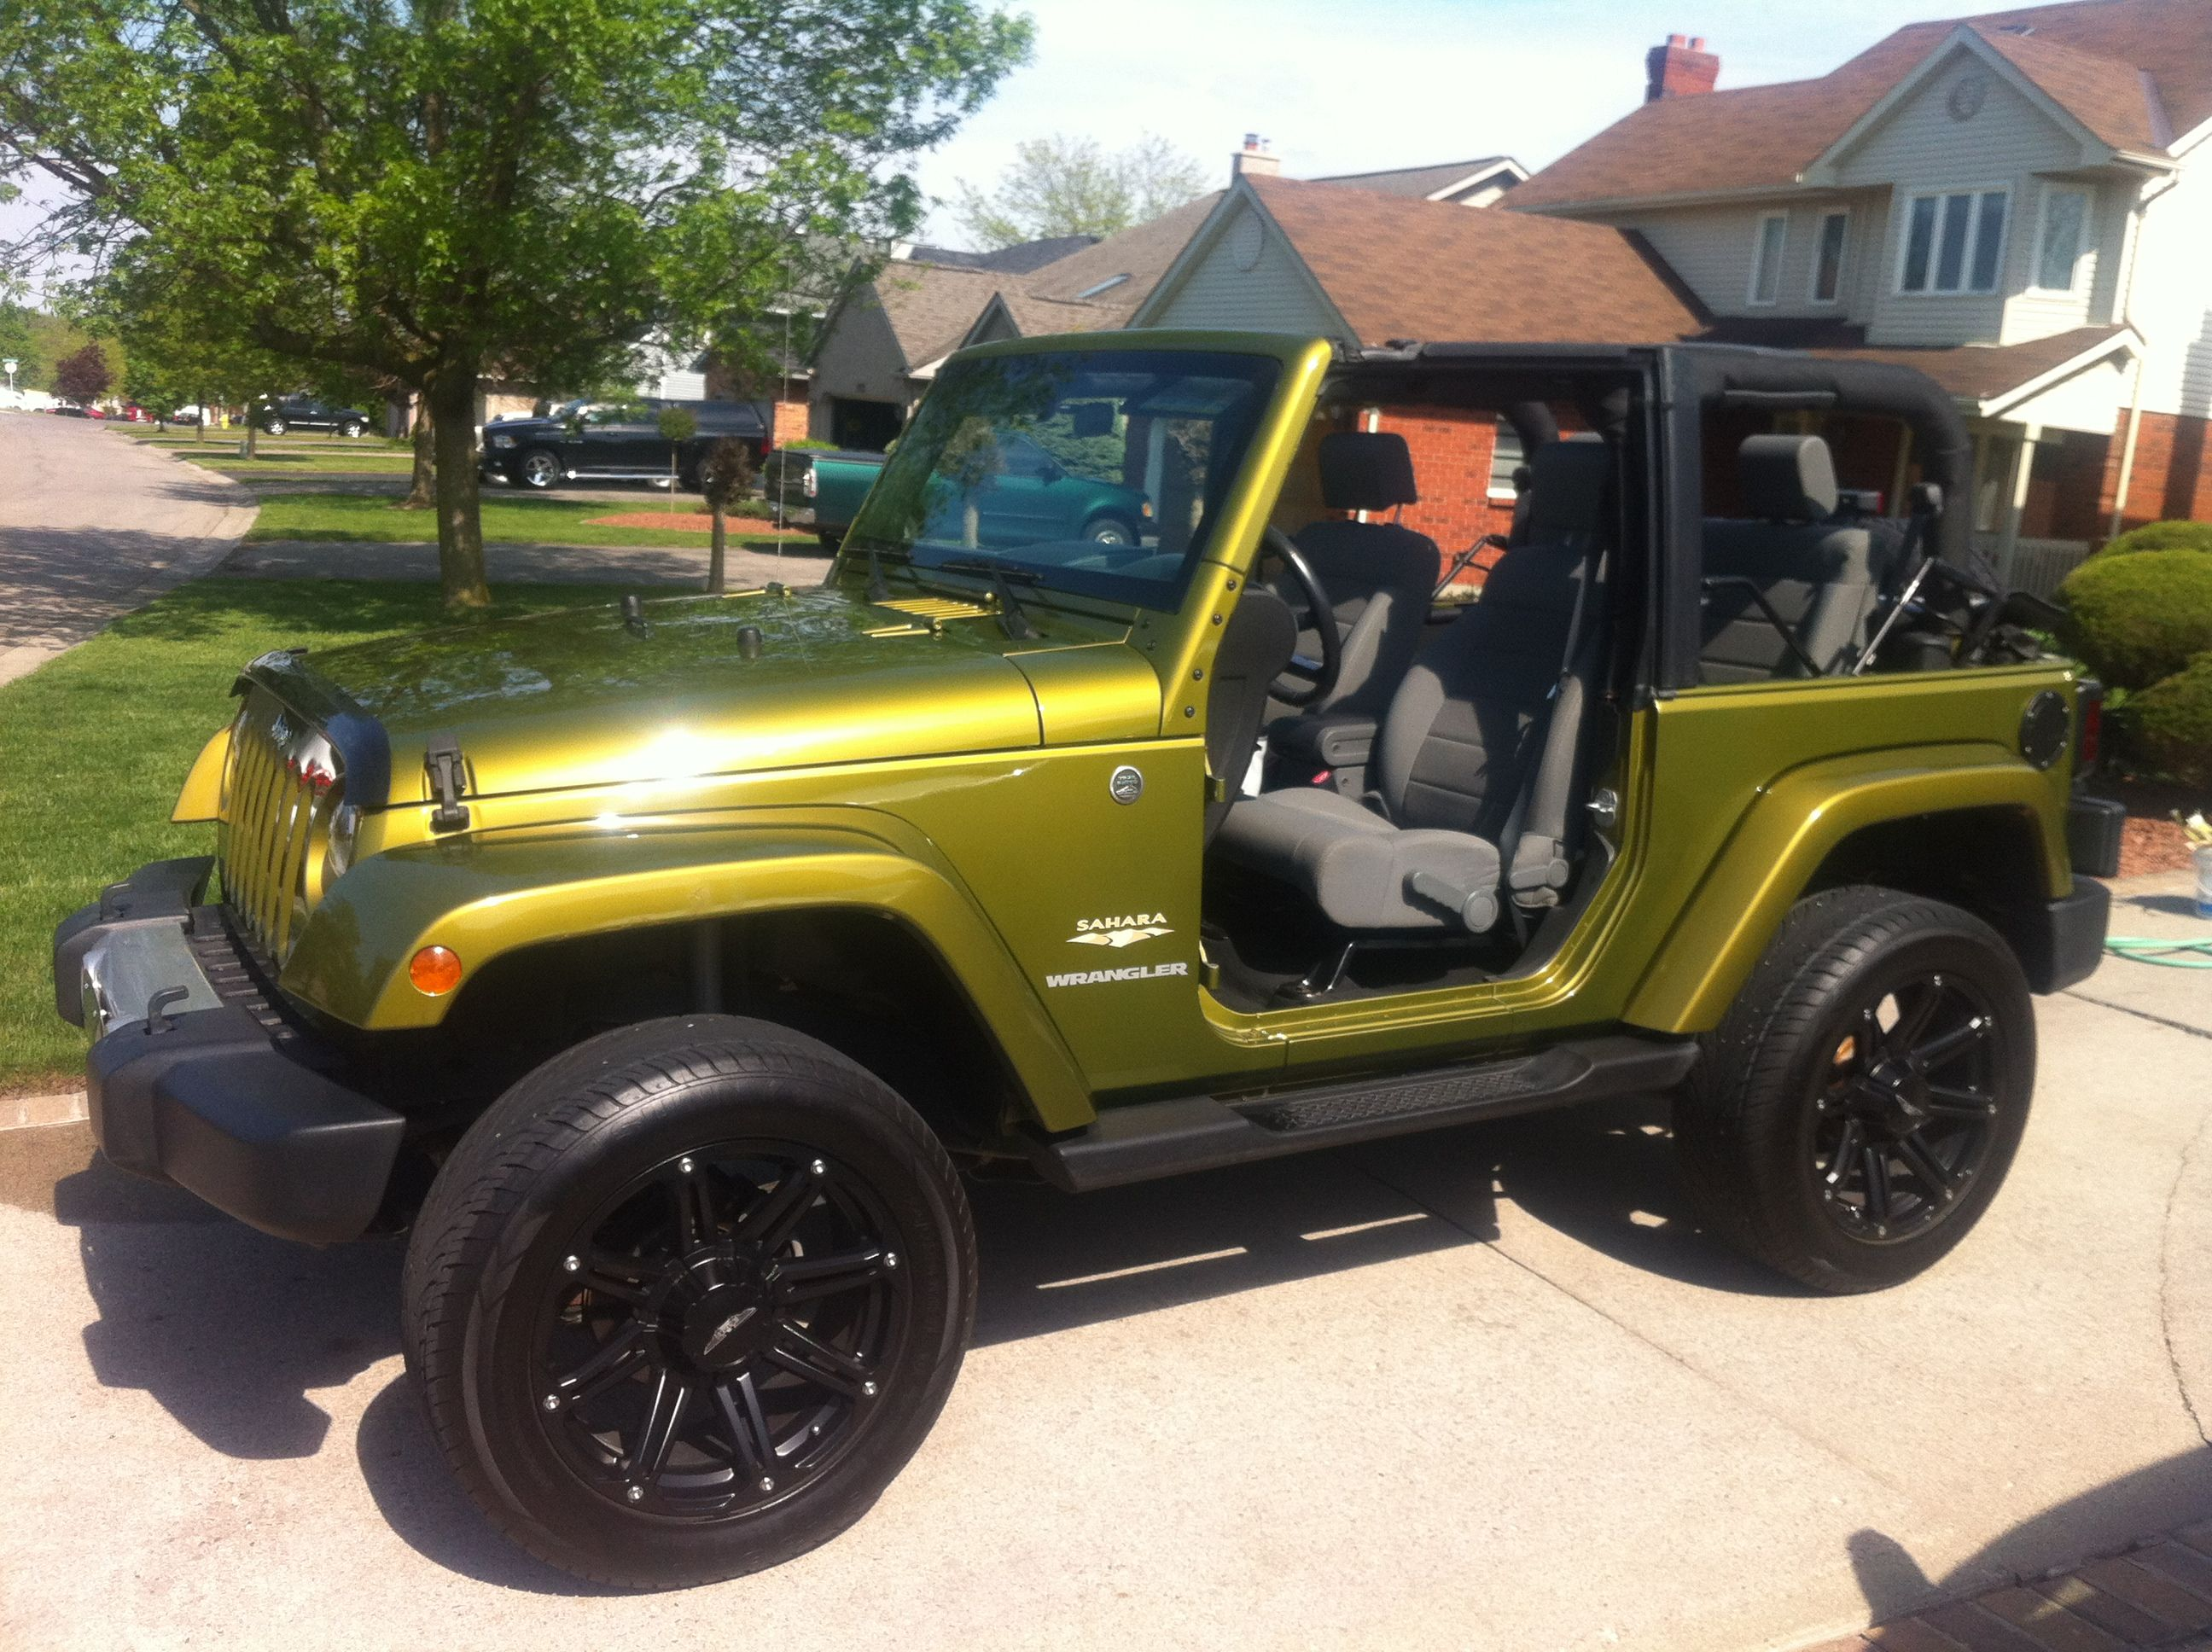 rescue green 08 sahara on 20 39 s jeep wrangler green. Black Bedroom Furniture Sets. Home Design Ideas